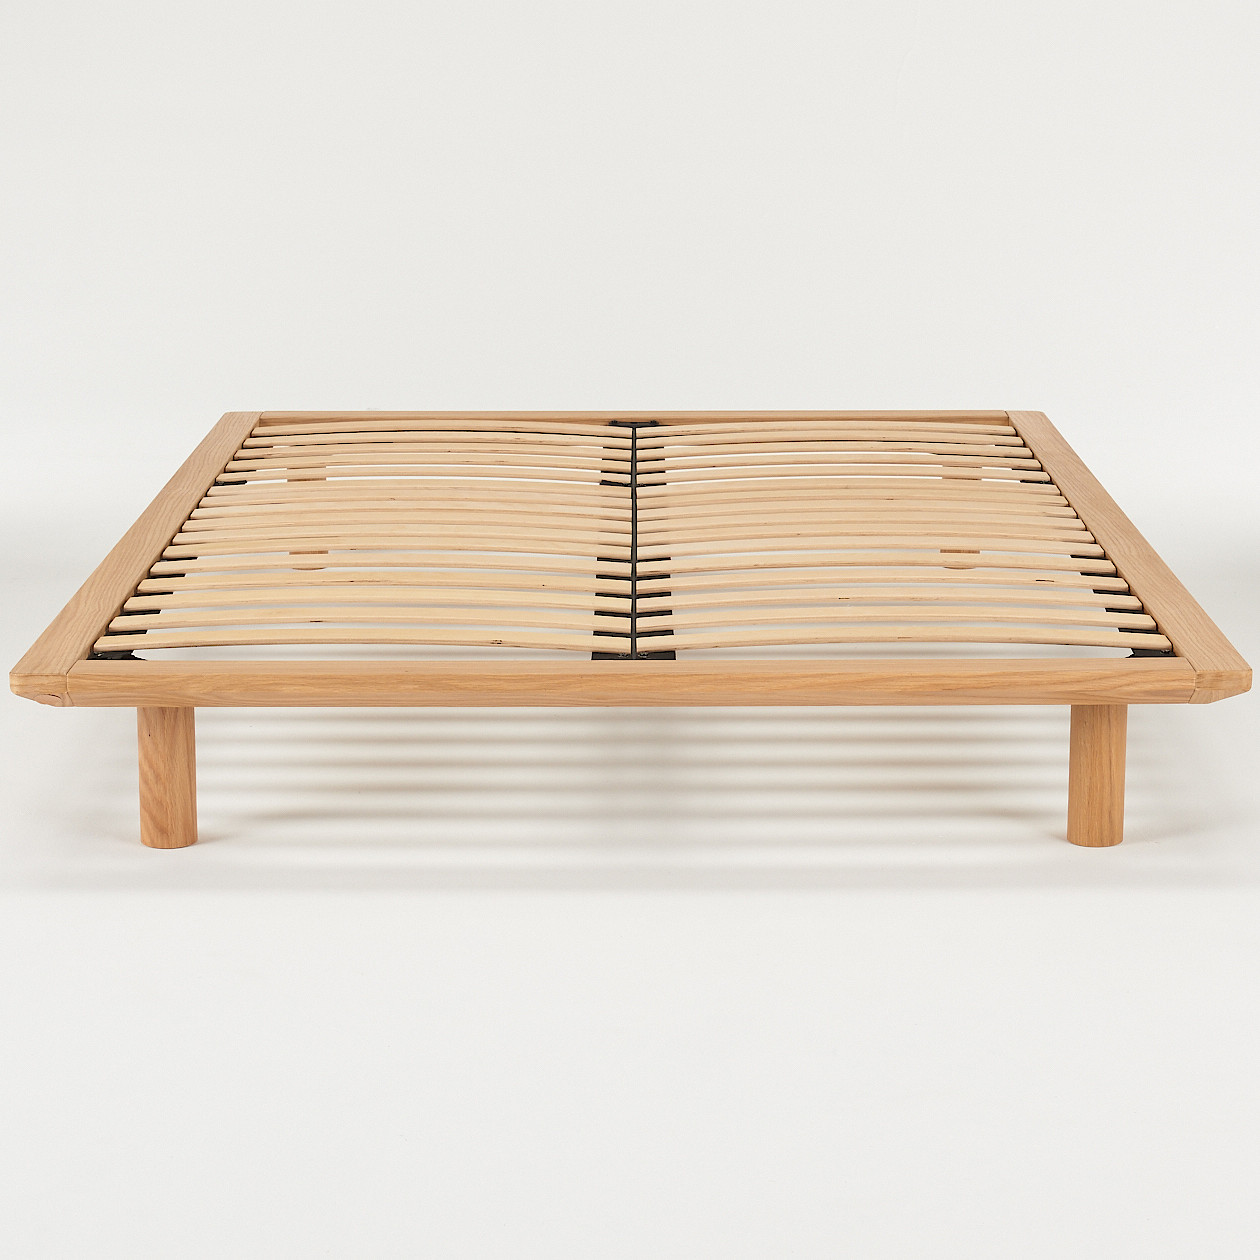 Oak Wood Bed Frame 無印良品 Muji